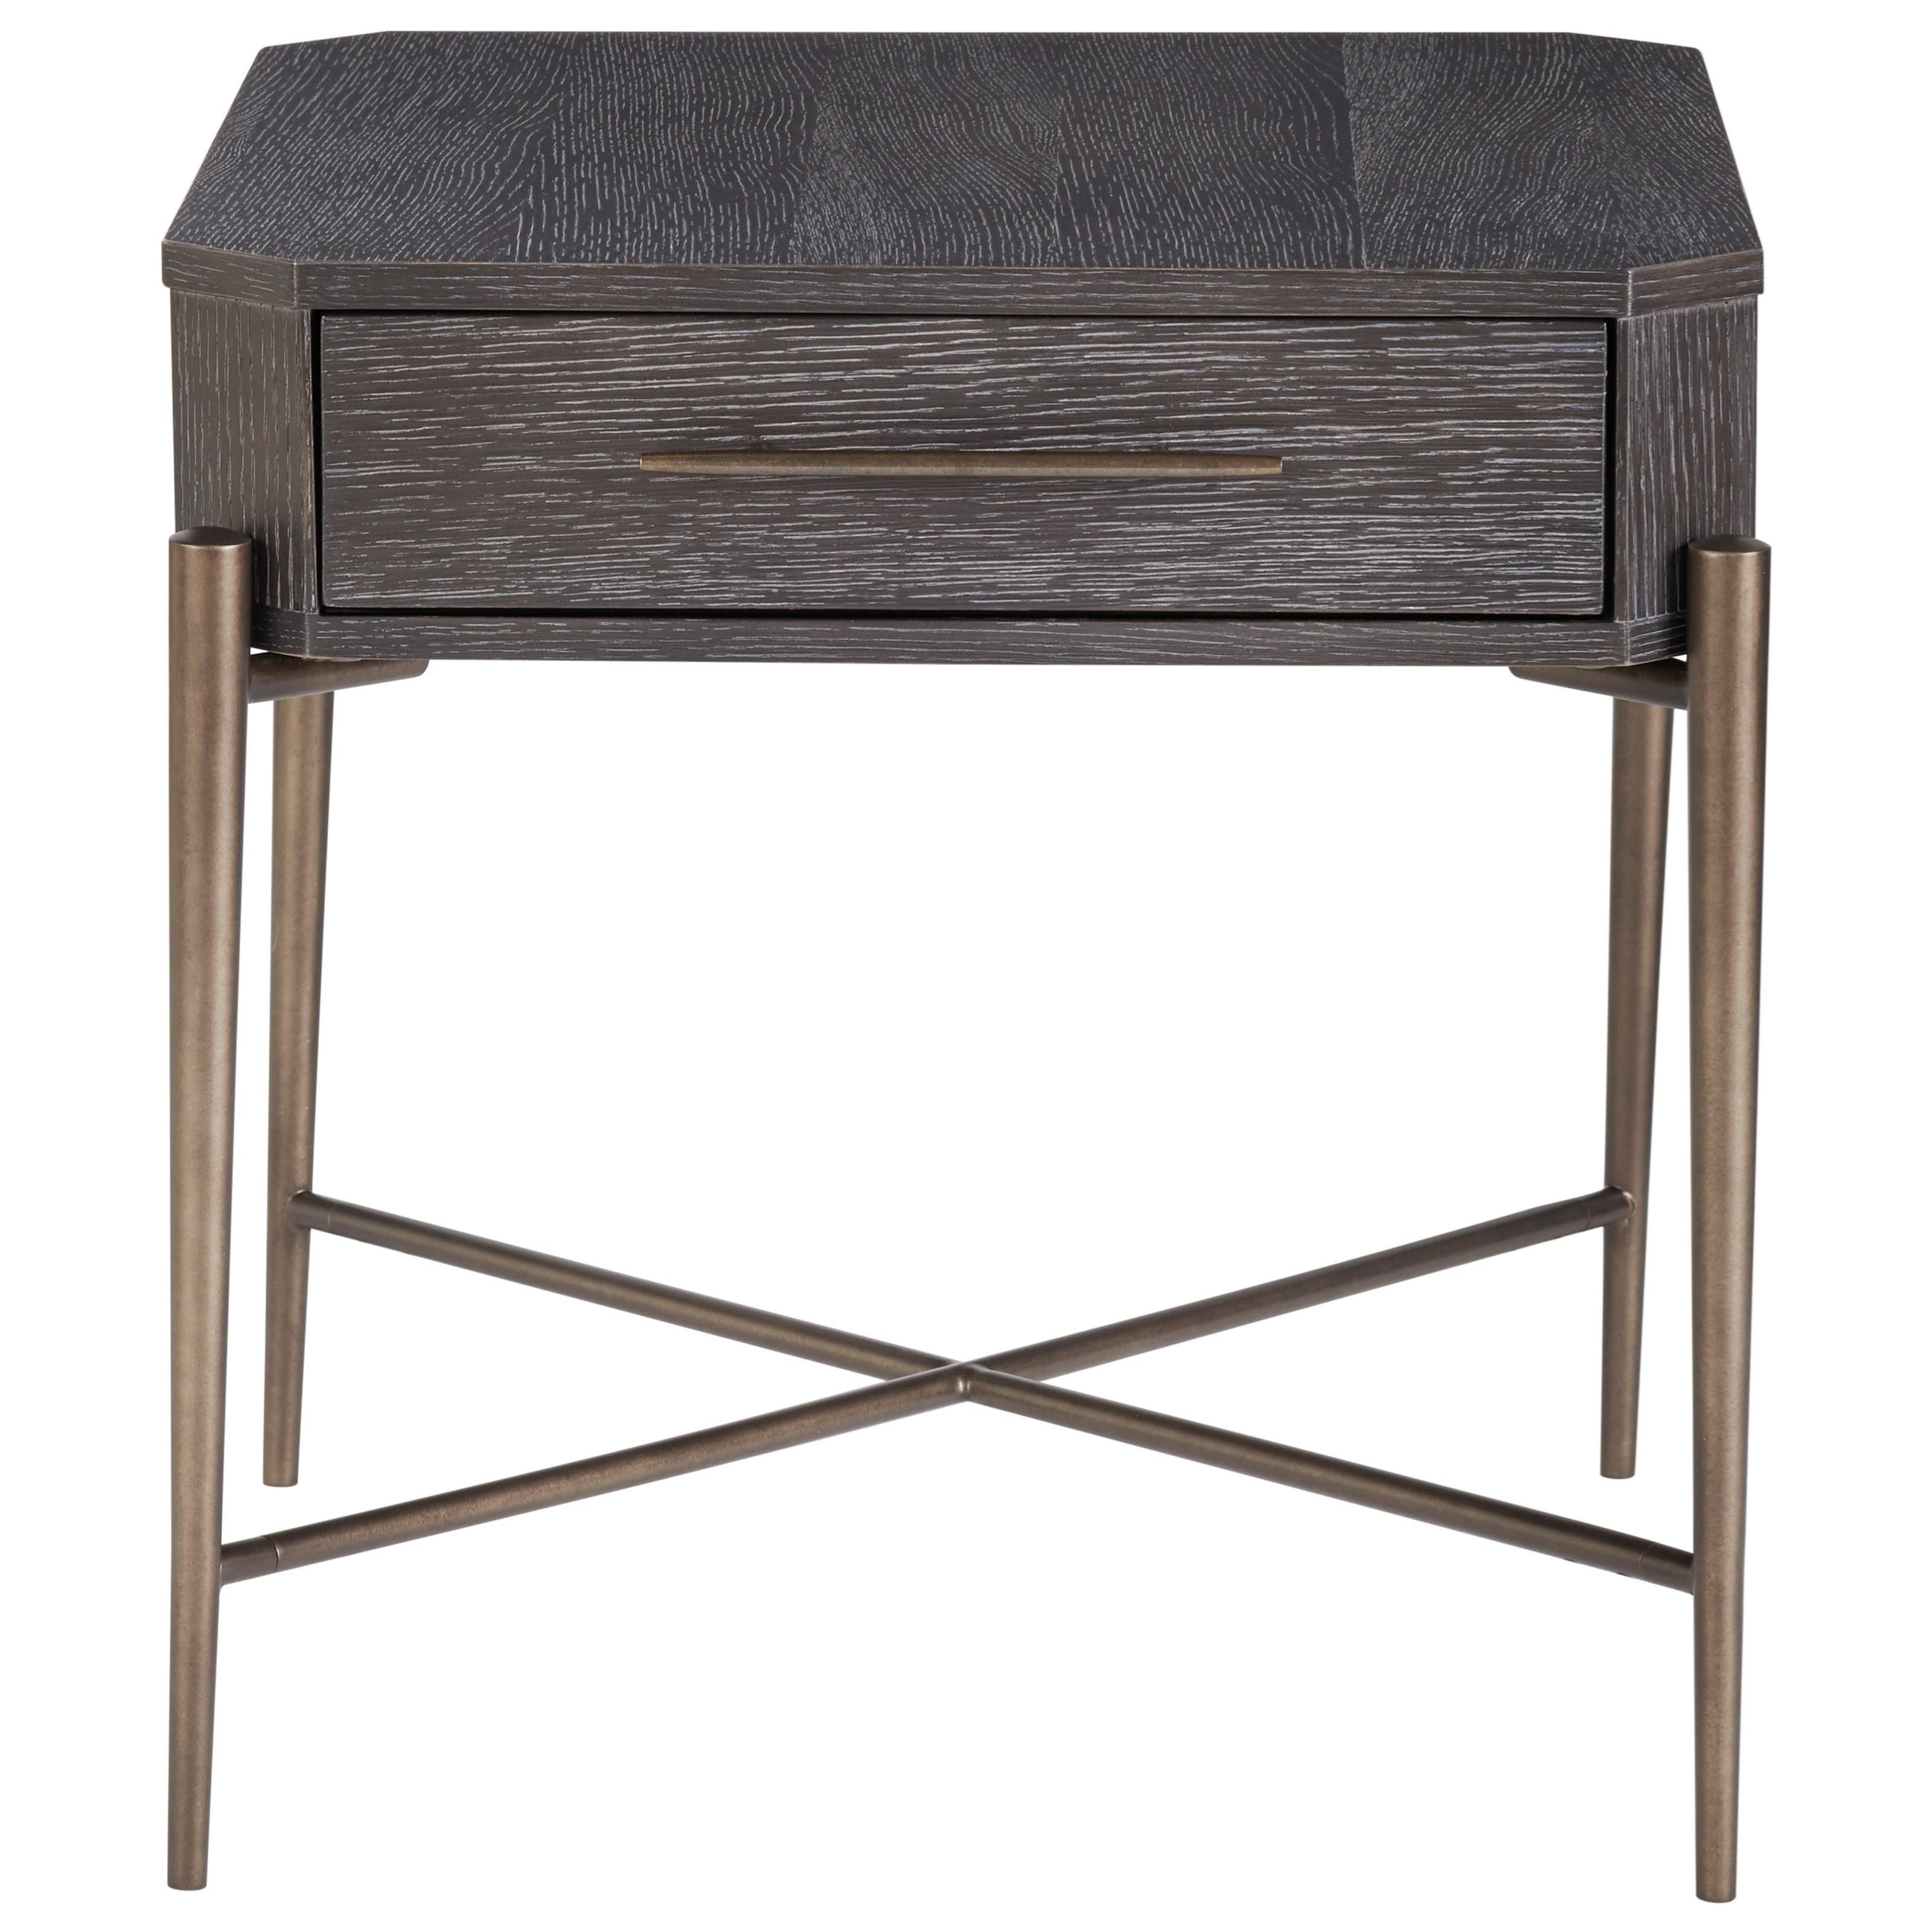 Curated Oslo End Table by Universal at Baer's Furniture